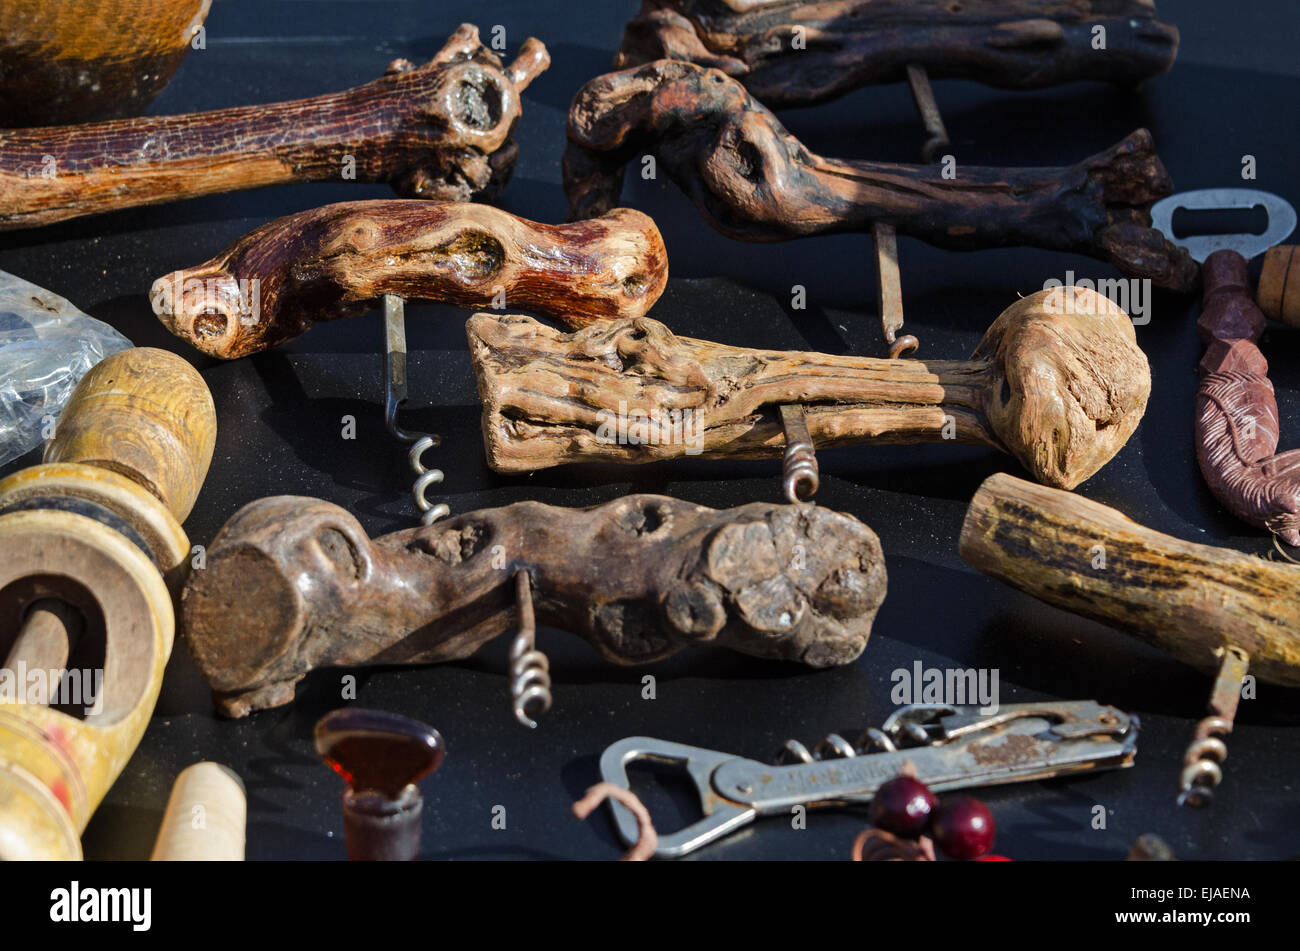 Corkscrews made from the roots of wine grapevines at the August flea market in Gigny-sûr-Saône, Burgundy, - Stock Image